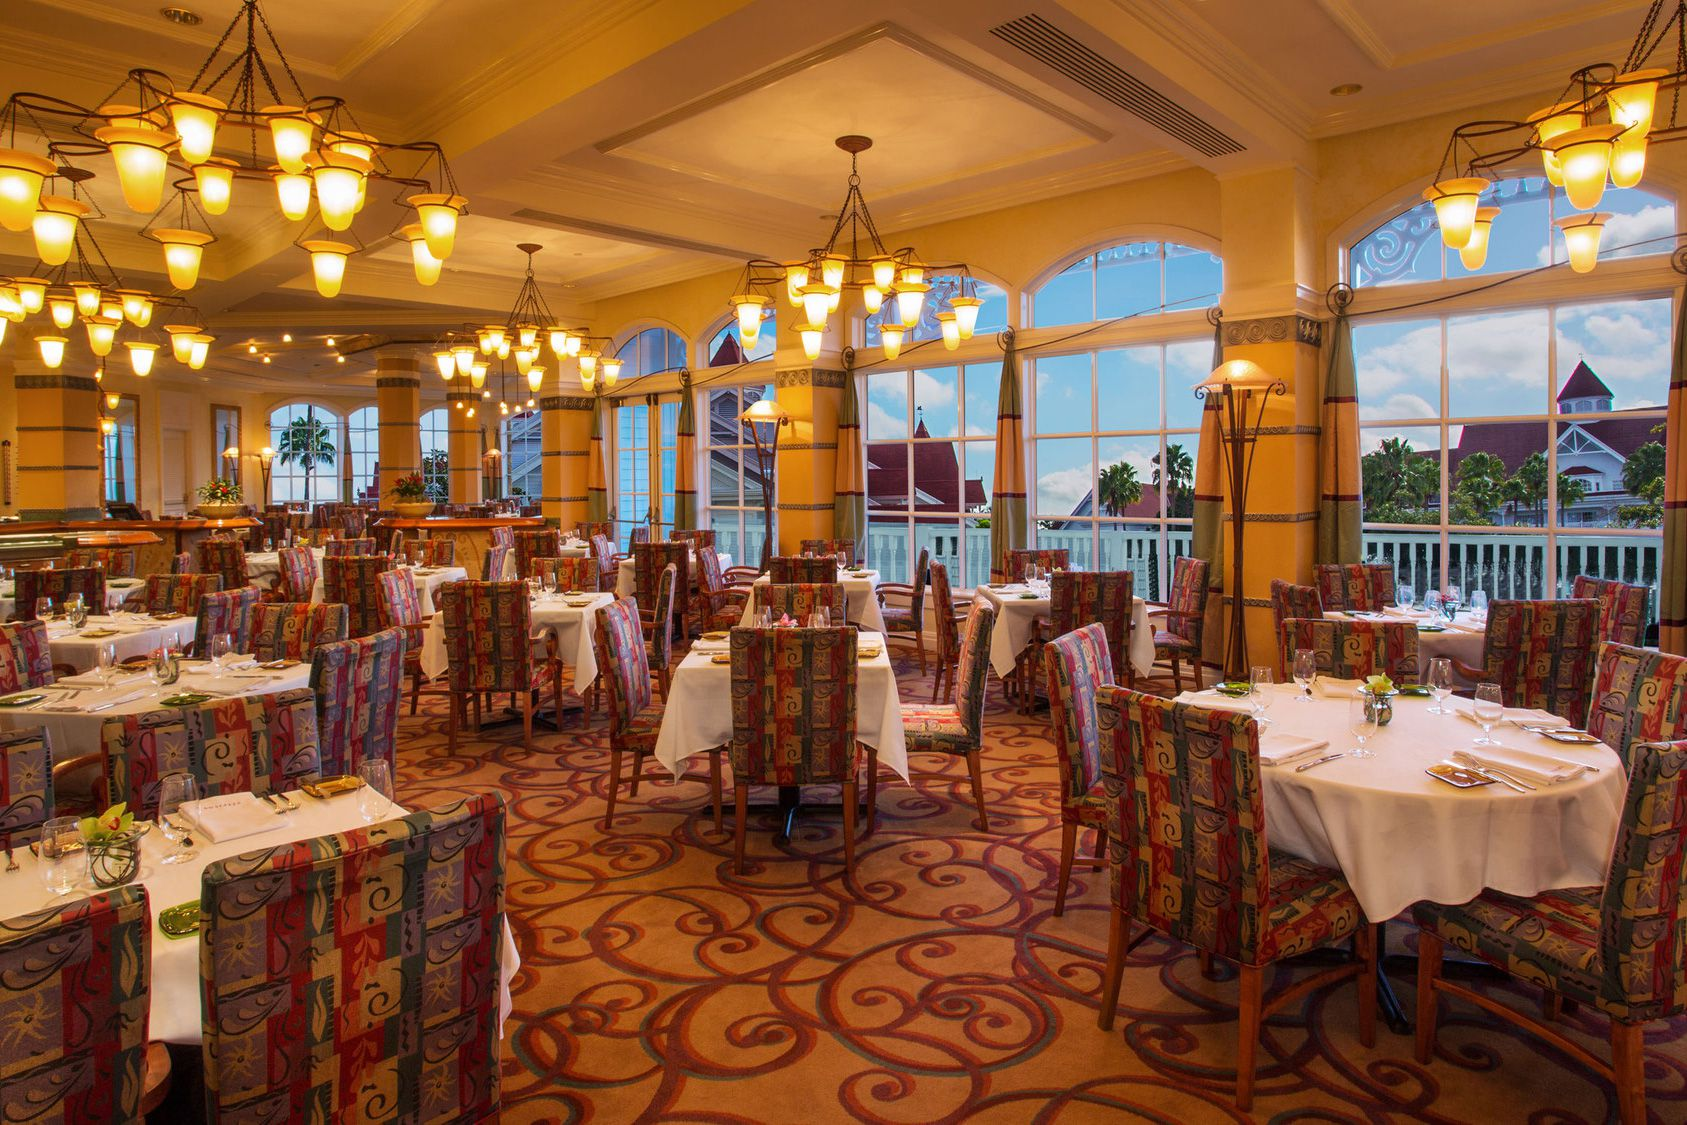 Top 10 table service restaurants at disney world - Best table service restaurants at disney world ...